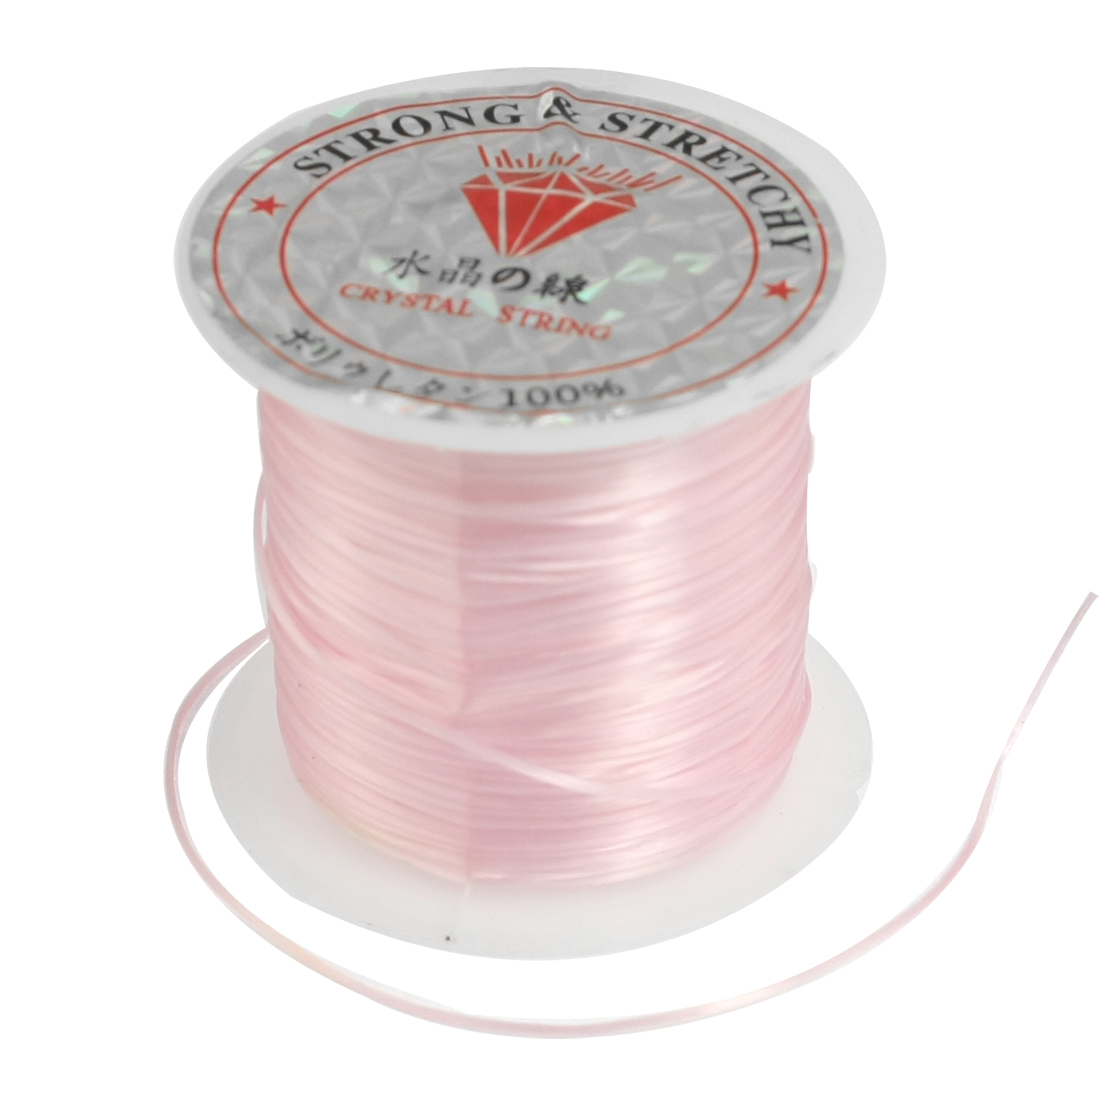 Jewelry Pendant Beading Thread Elastic Crystal String Cord Spool Pink 9M